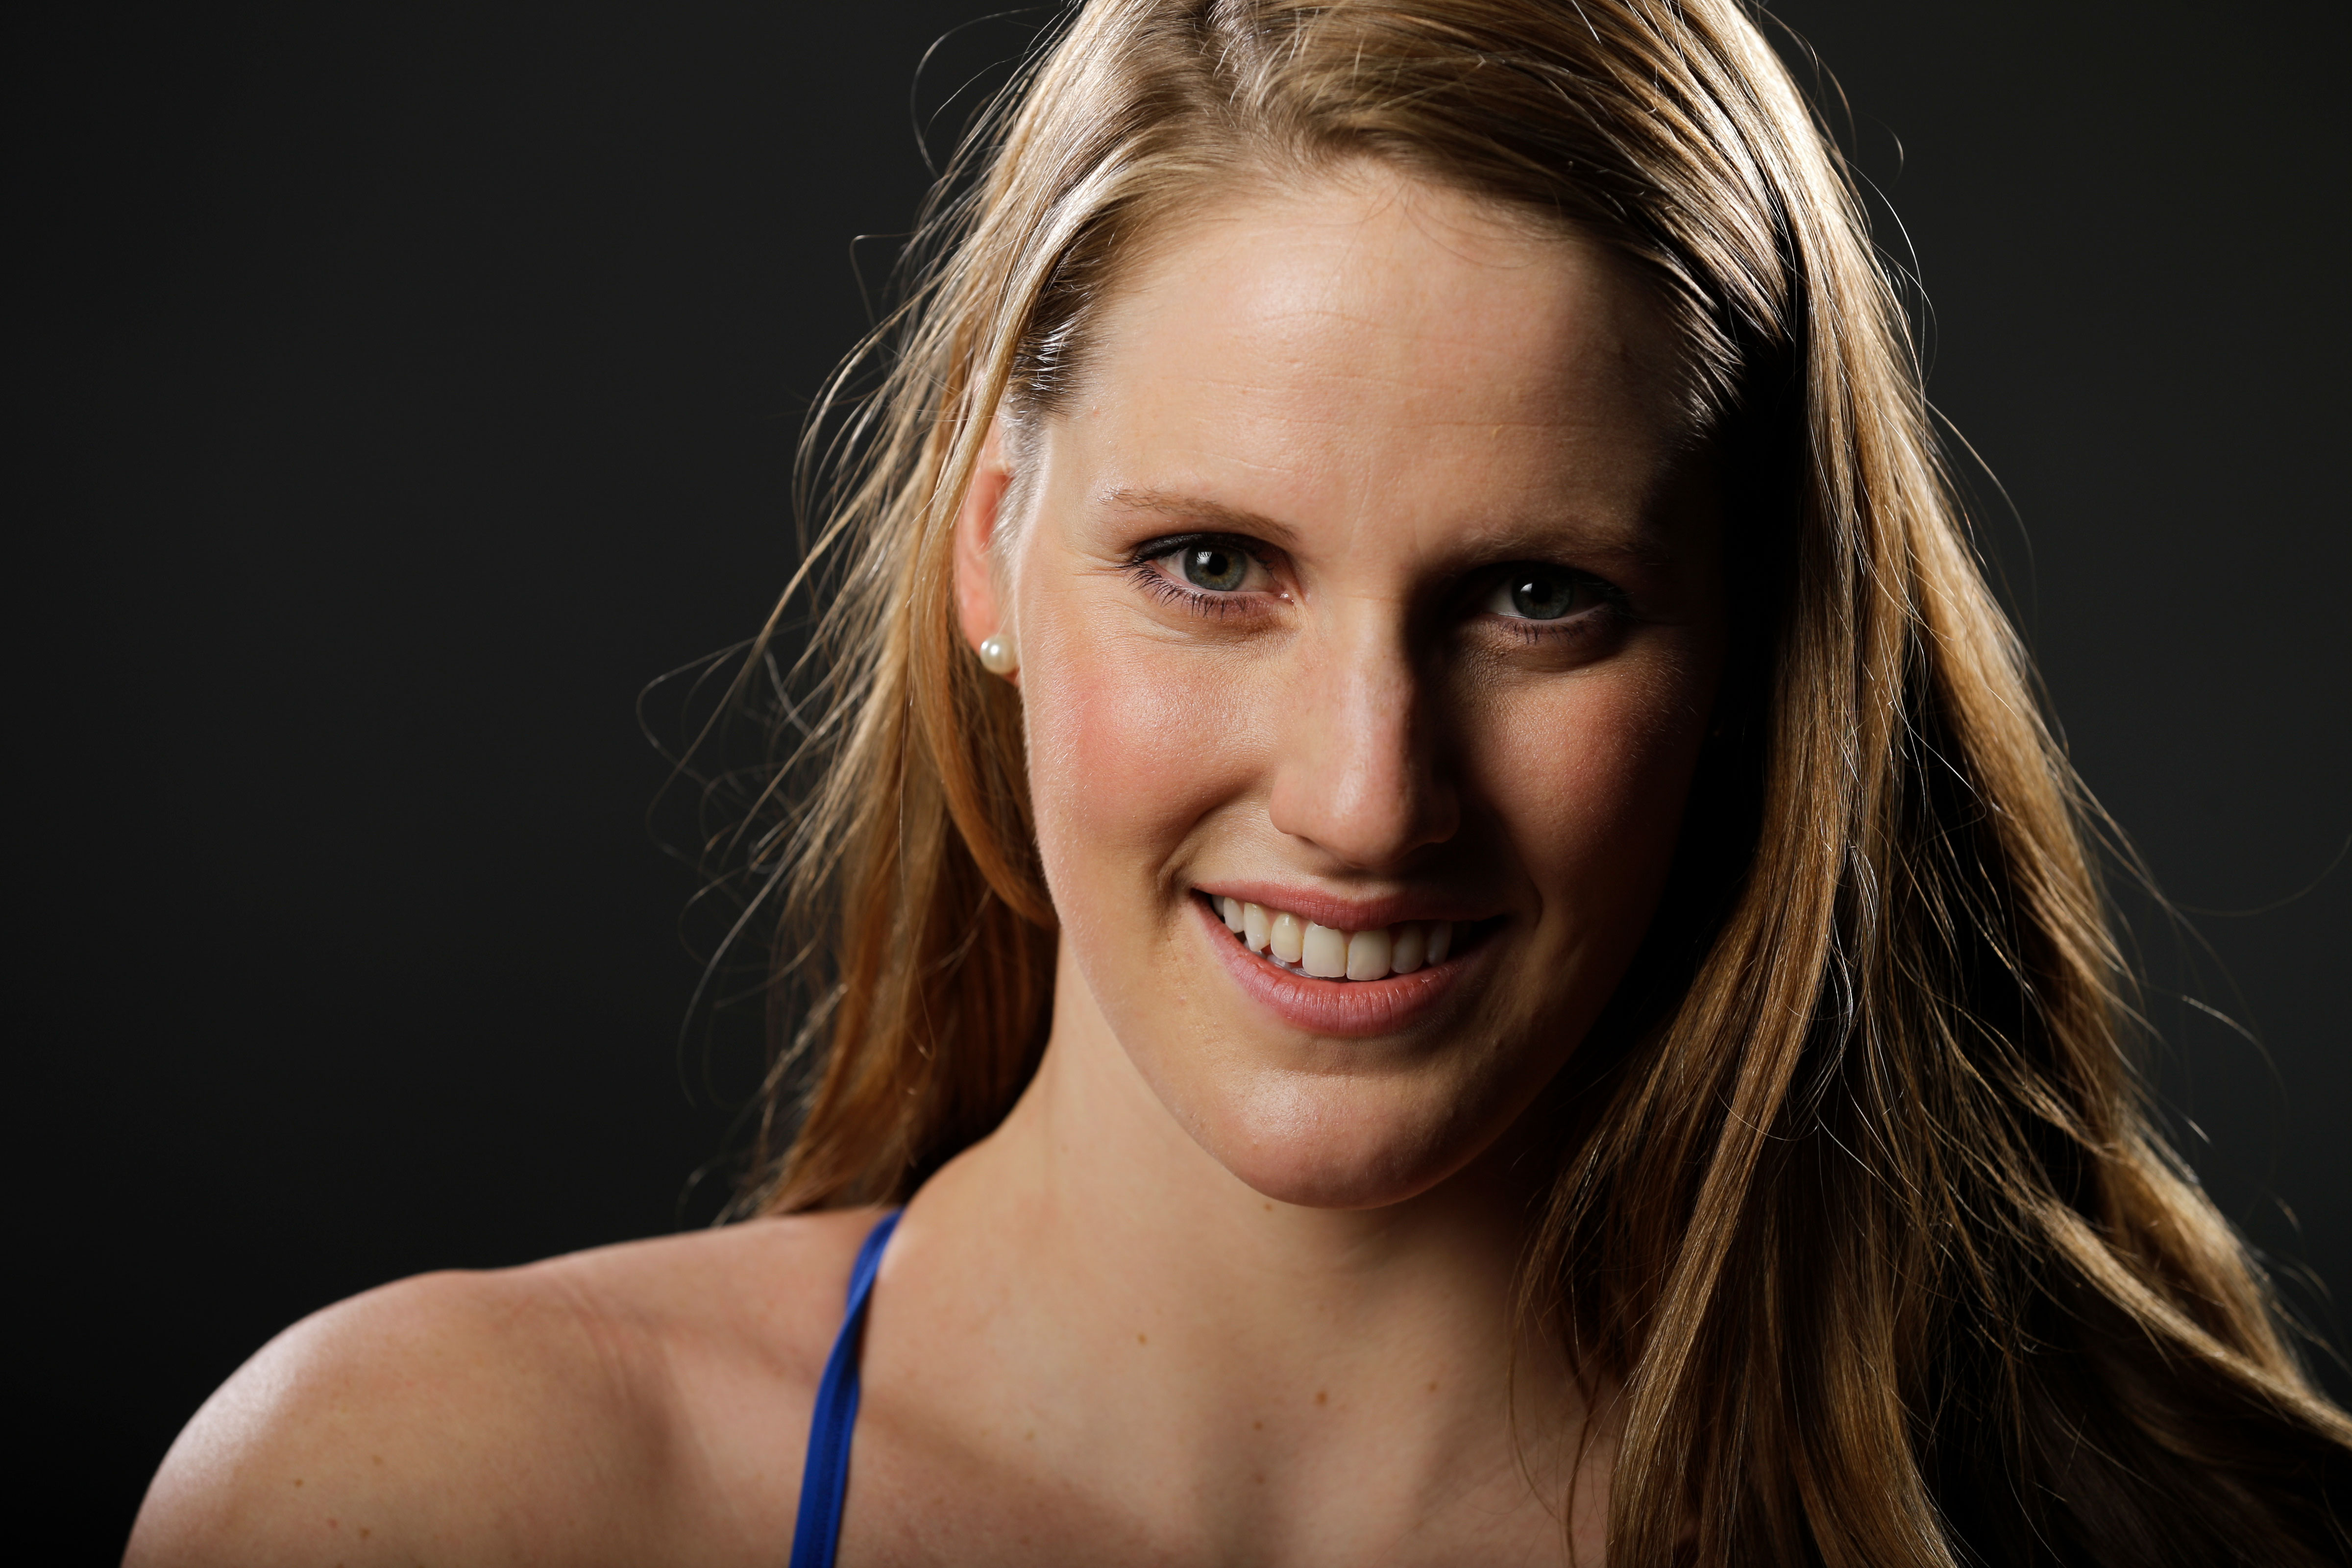 <p>Swimmer Missy Franklin poses for photos at the 2016 Team USA Media Summit, March 2016.</p>